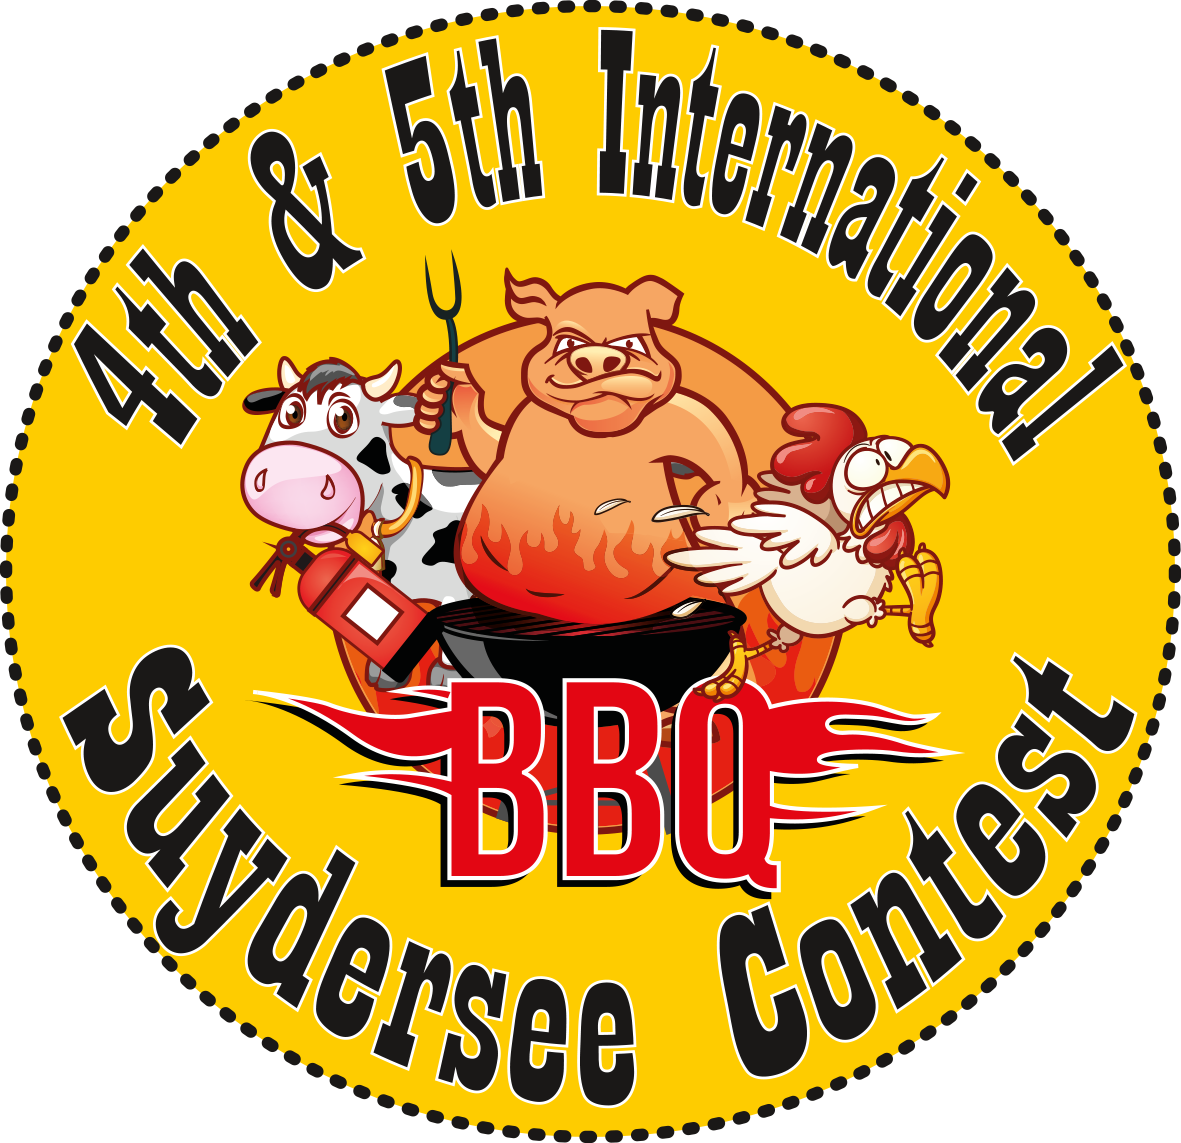 4th and 5th International Suydersee BBQ Contest 2020